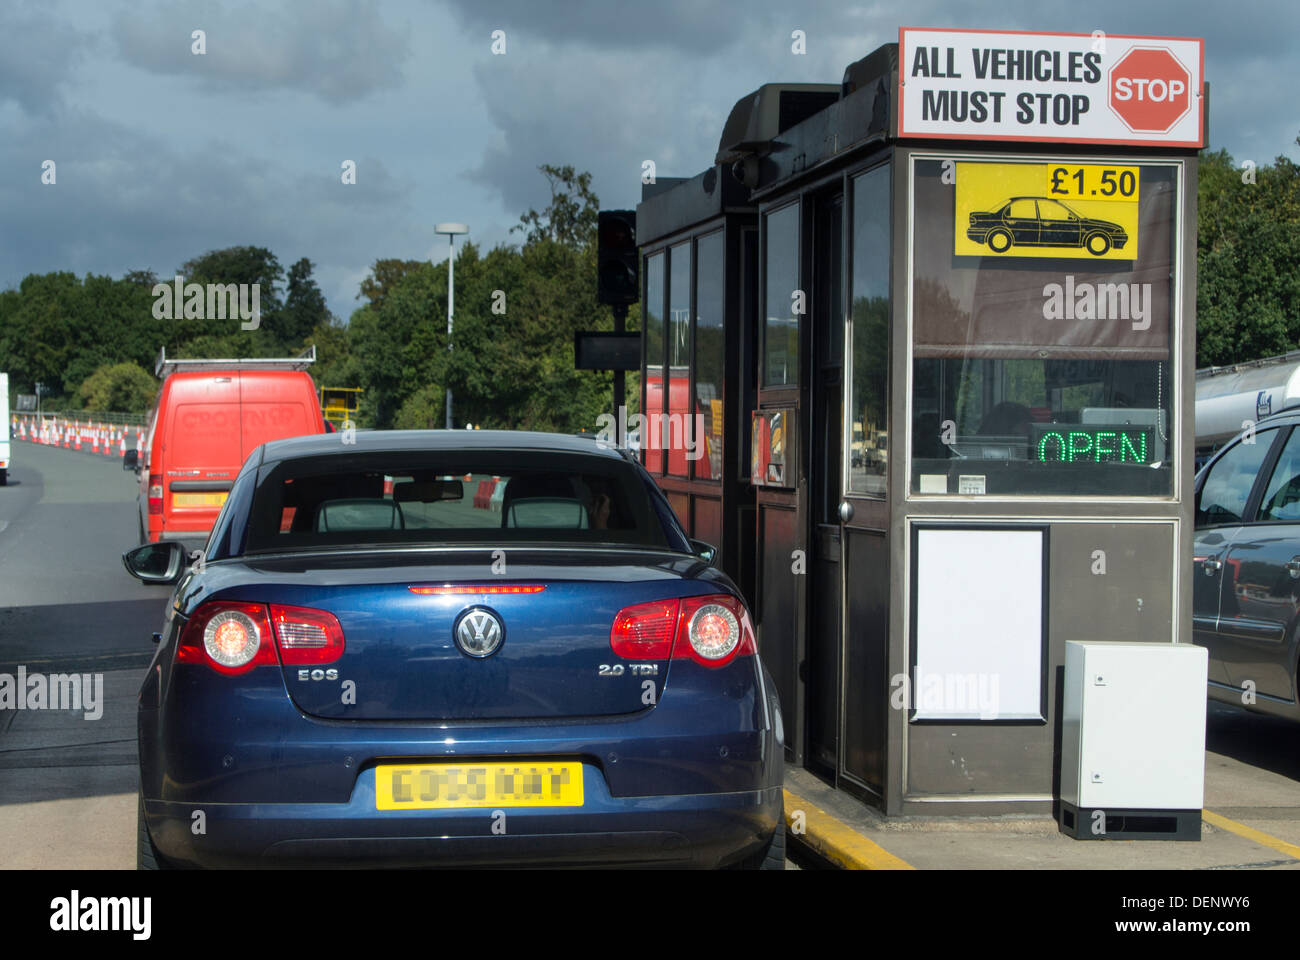 Toll booth on the Humber bridge - Stock Image